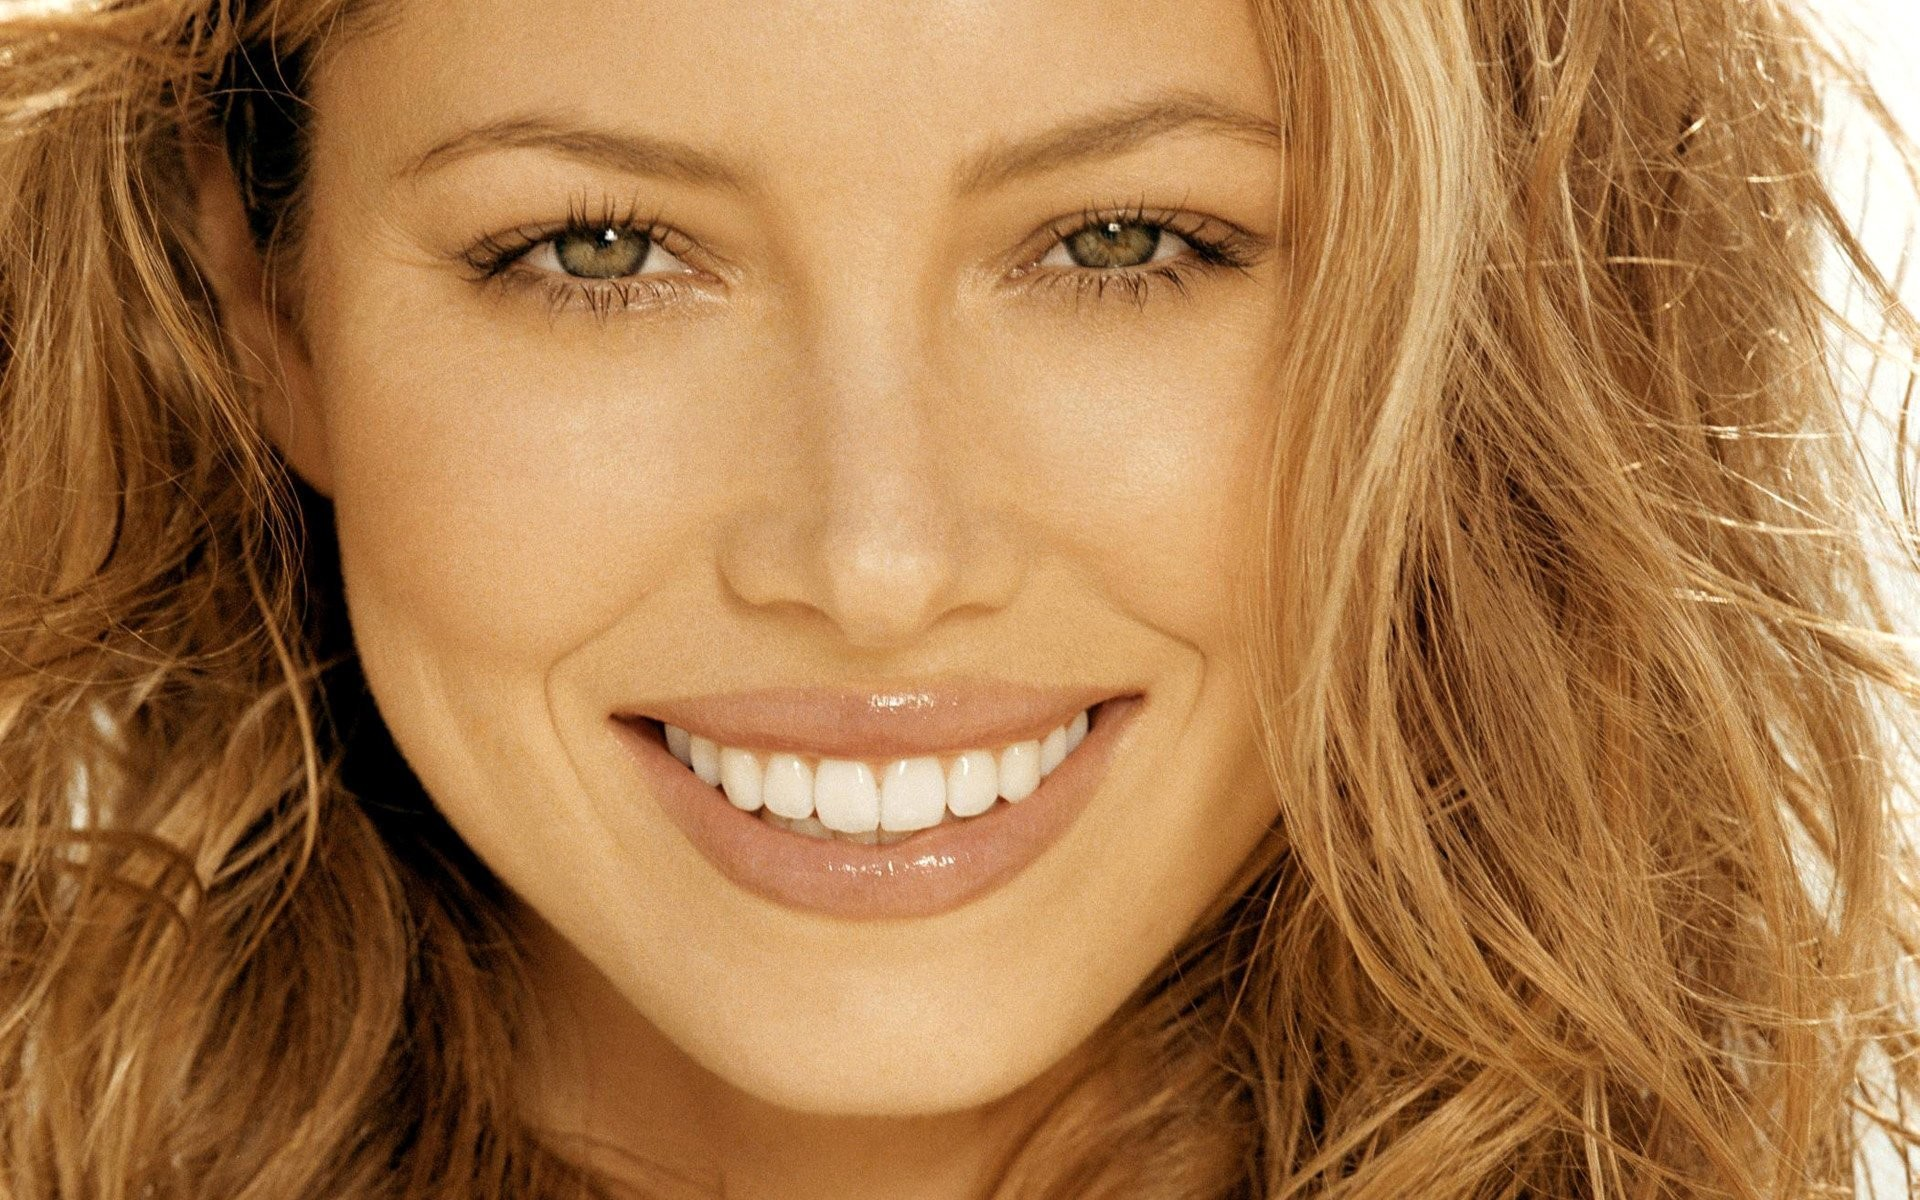 1920x1200 jessica biel jessica biel actress producer director screenwriter beautiful  beauty mood beautiful smile radiant eyes celebrity